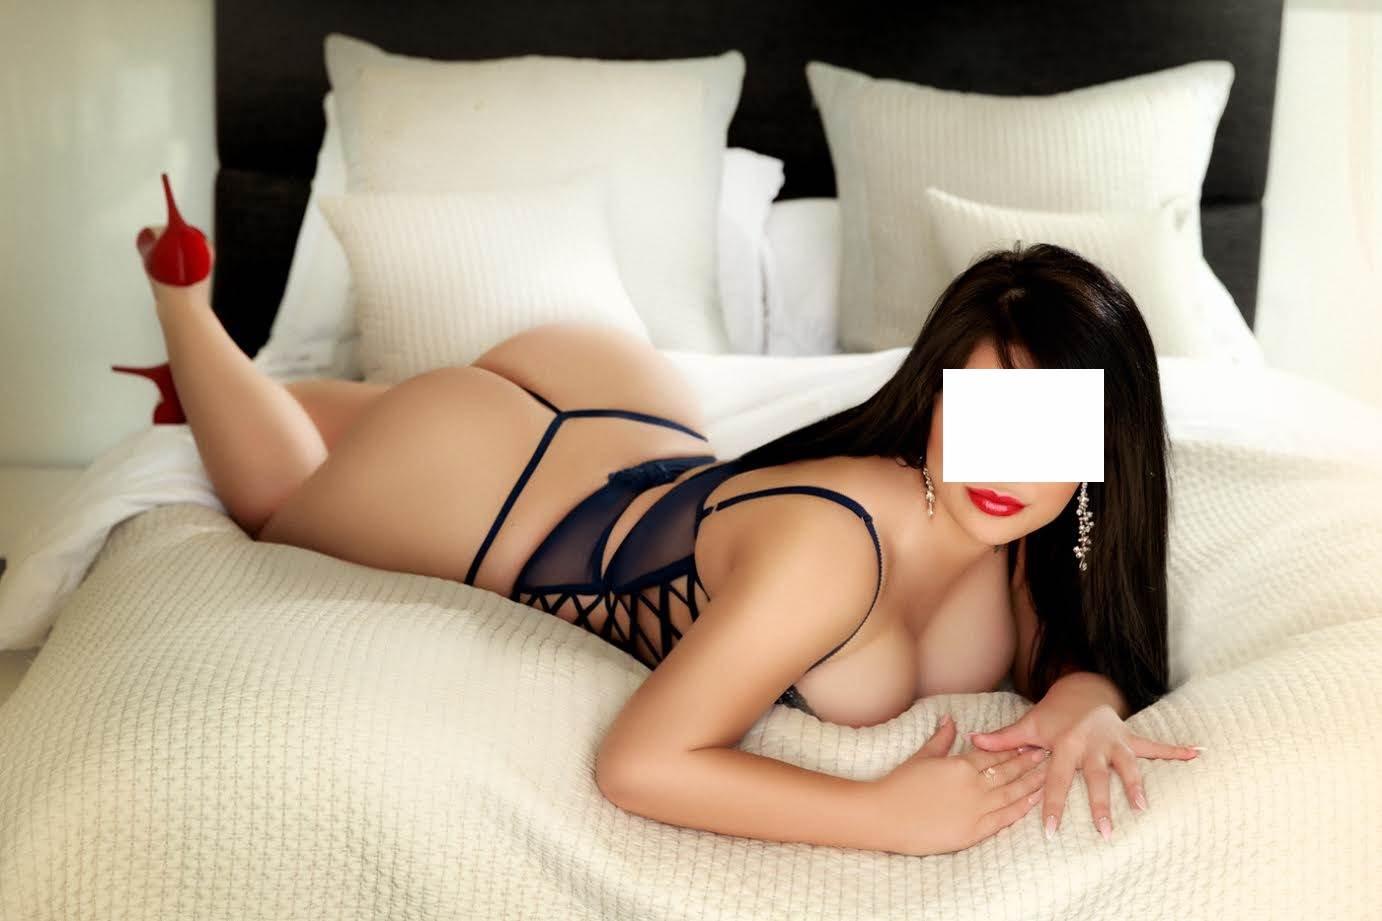 Incall escorts in melbourne florida